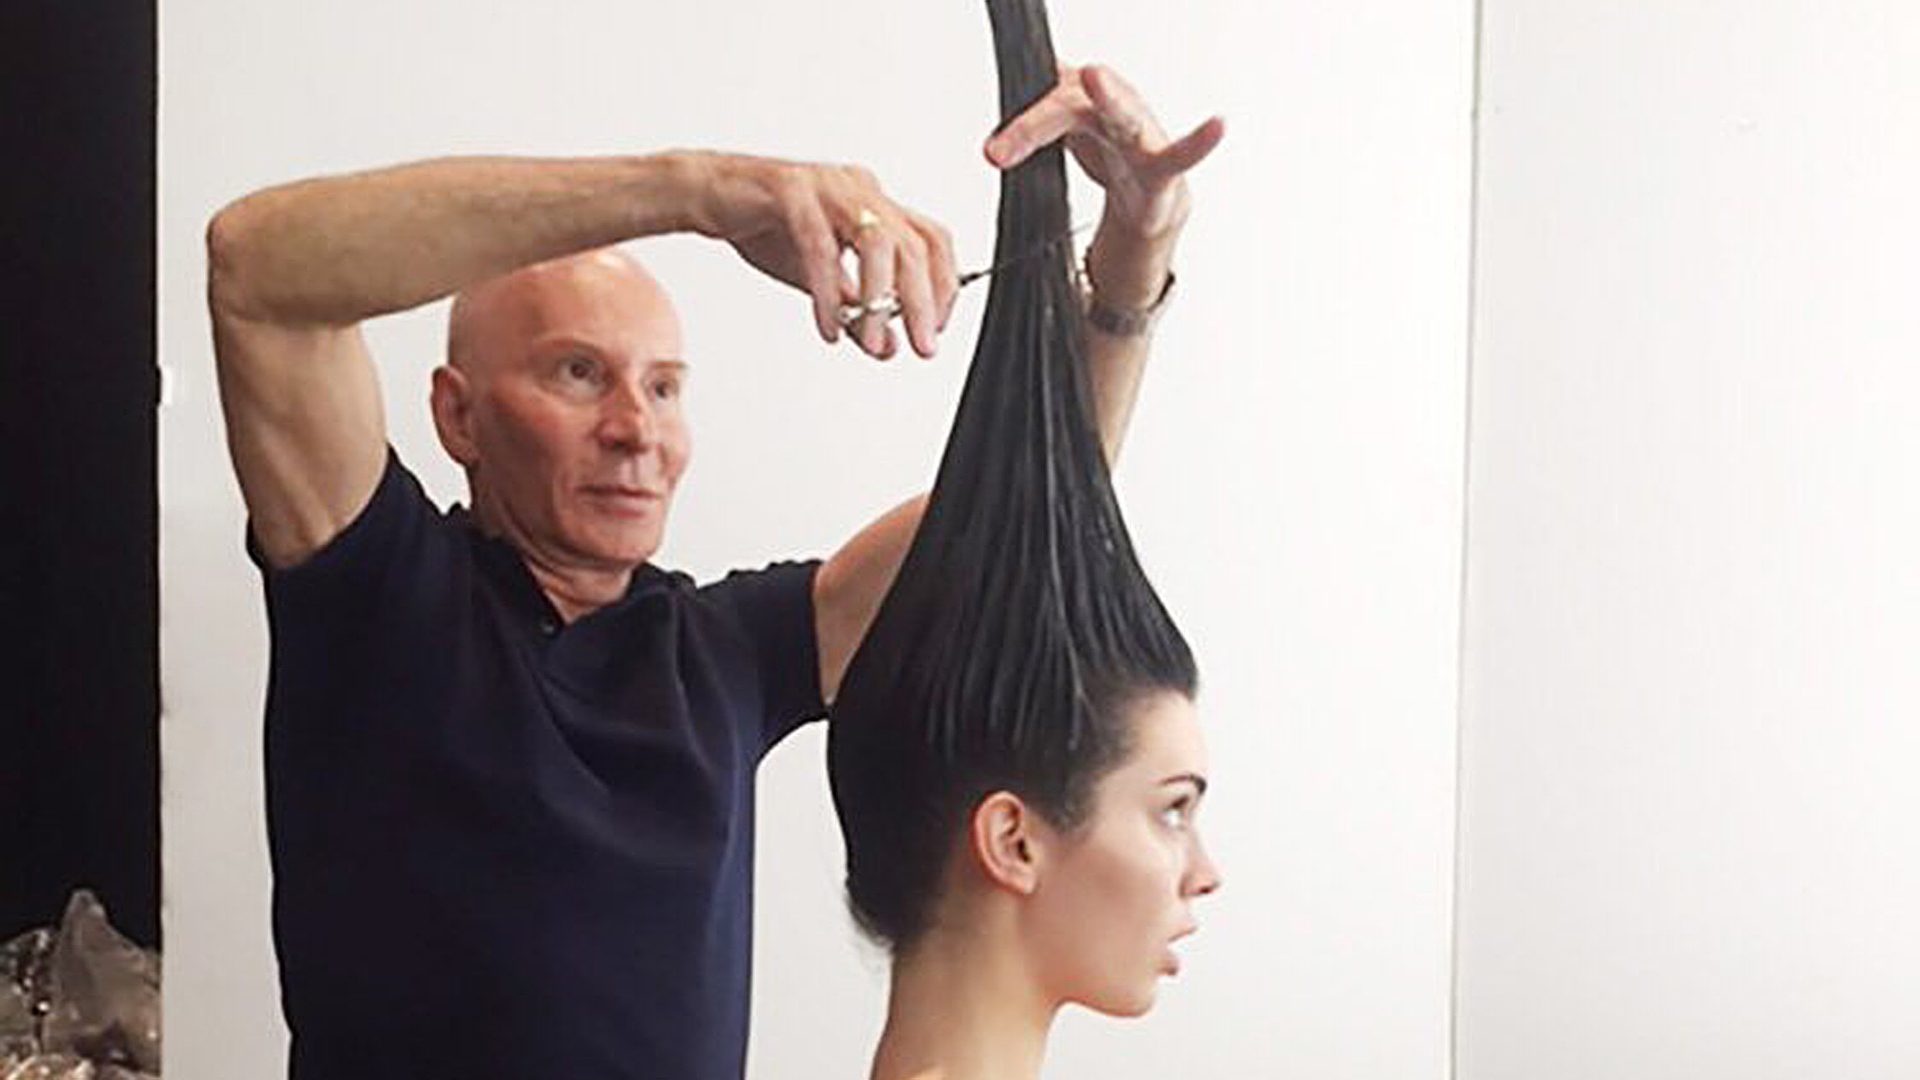 Did Kendall Jenner Get A Vertical Haircut For Her Vogue Cover